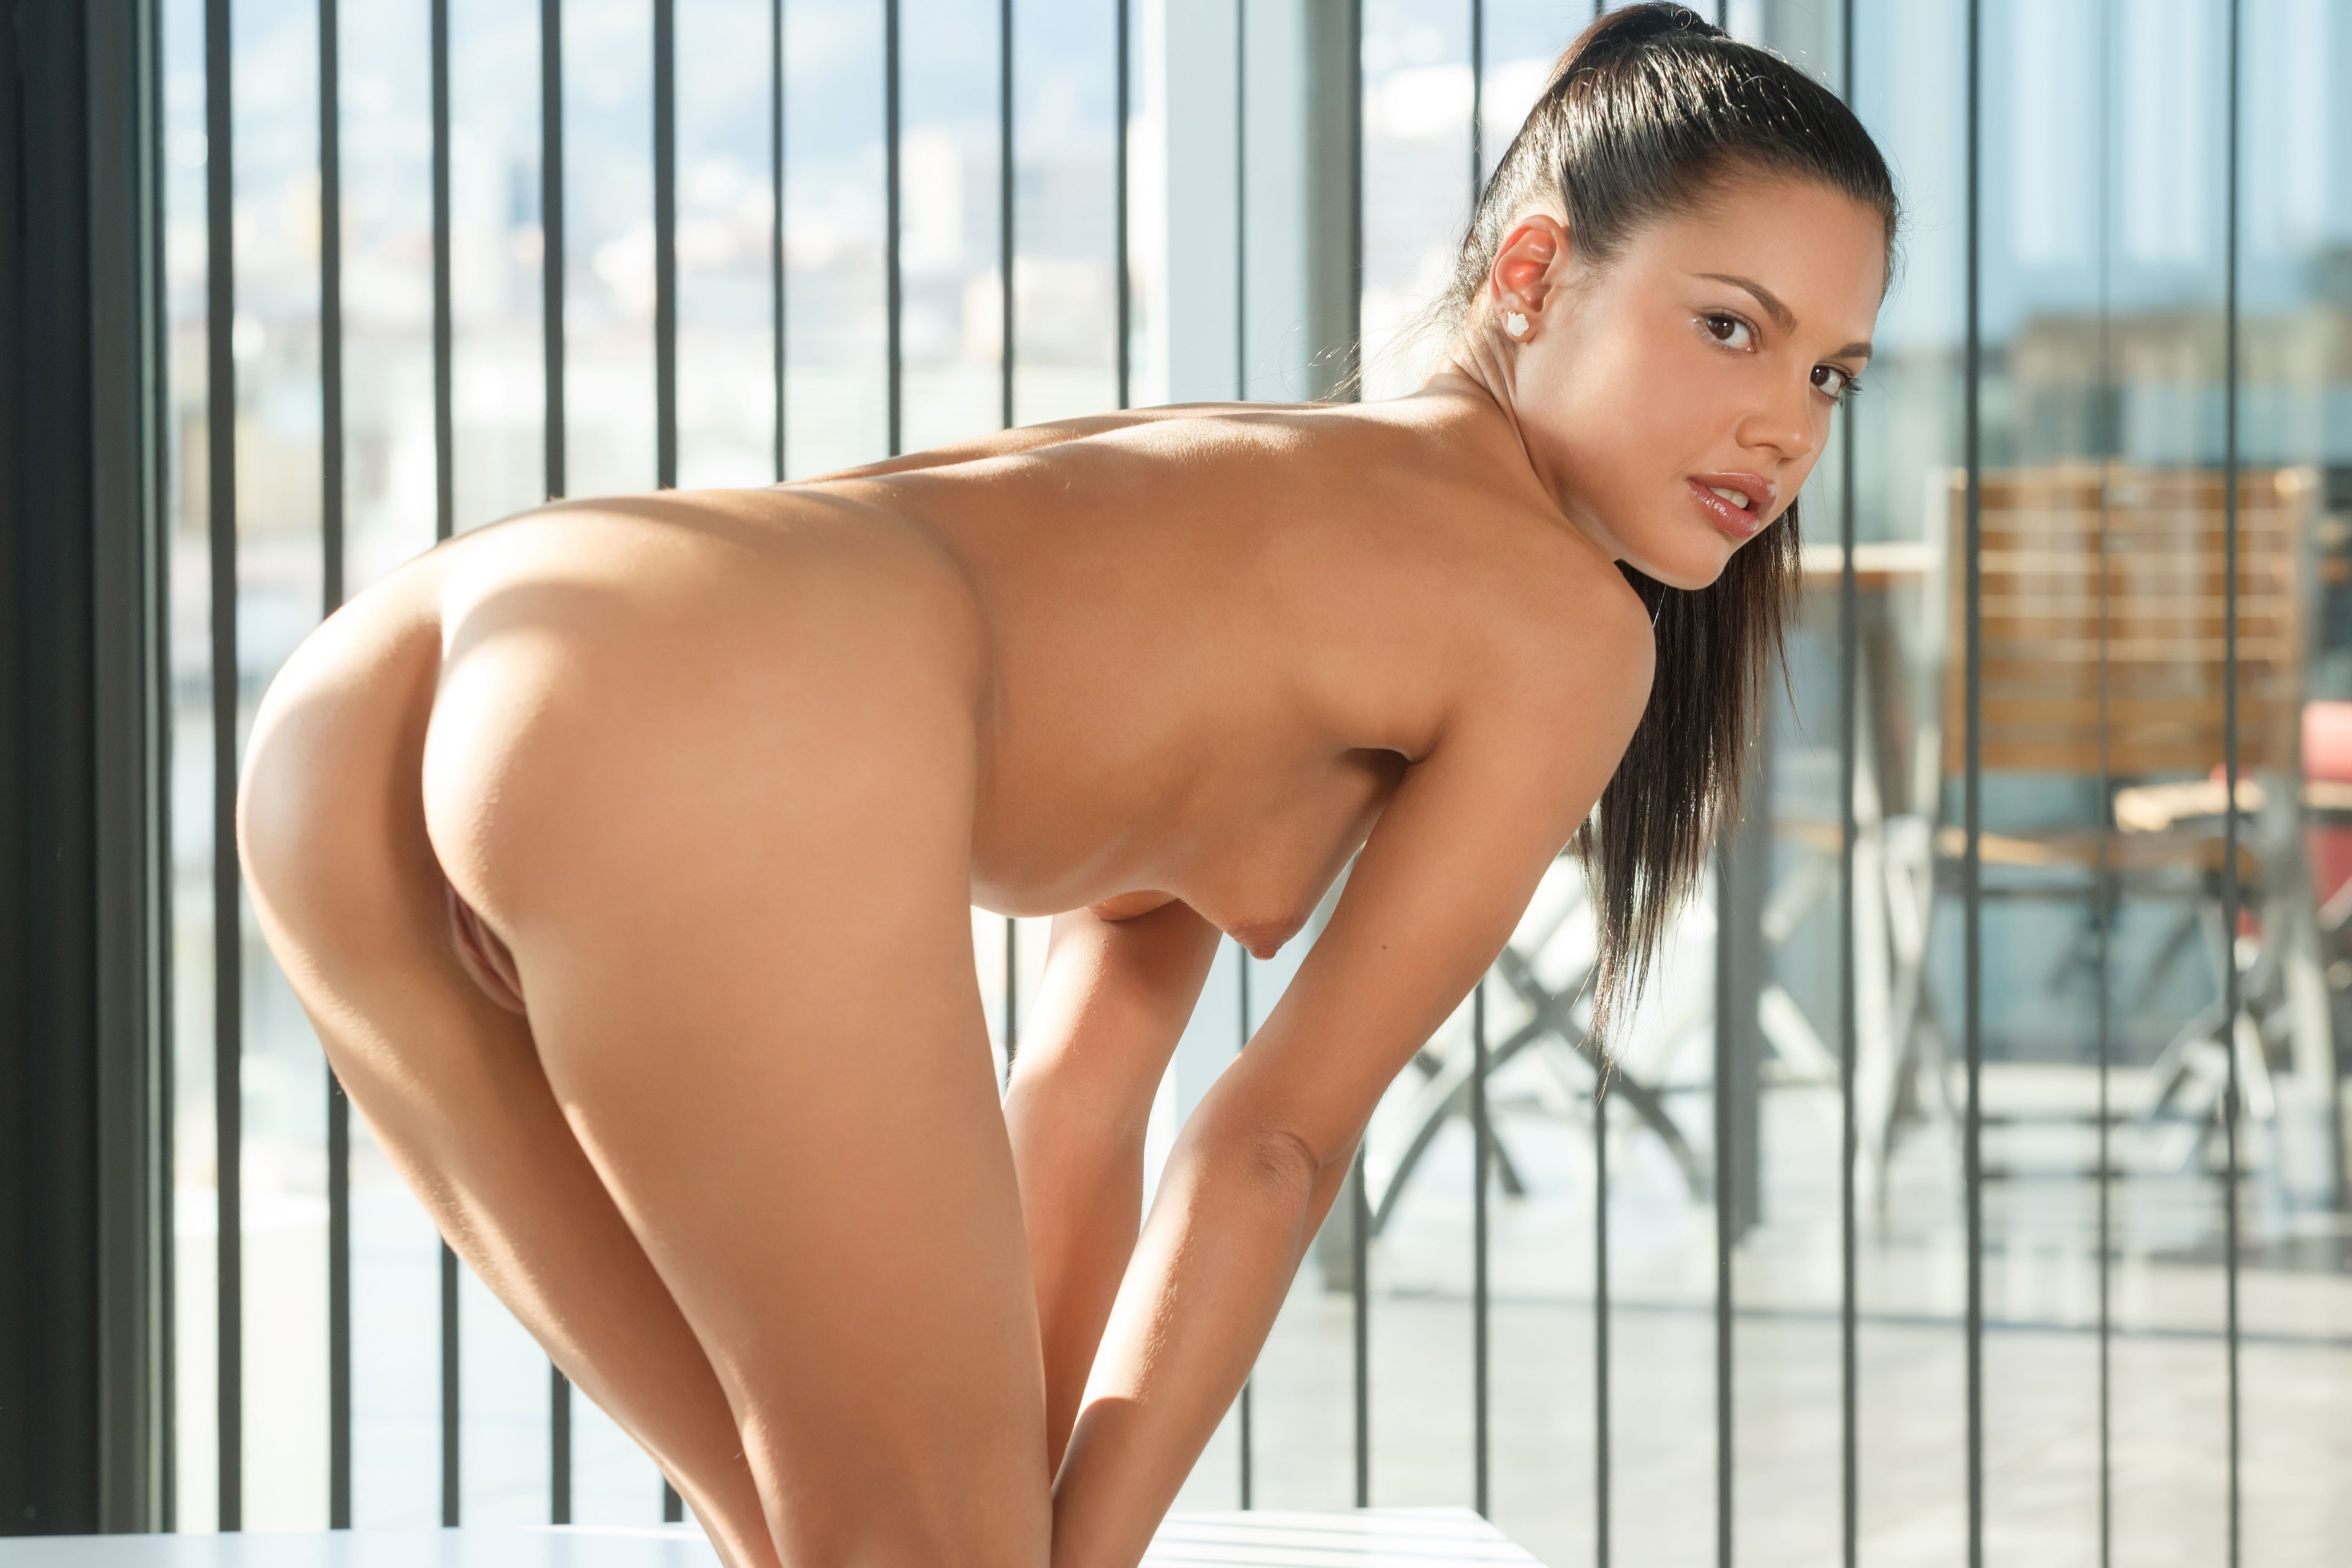 wallpaper apolonia, brunette, sexy girl, adult model, nude, naked